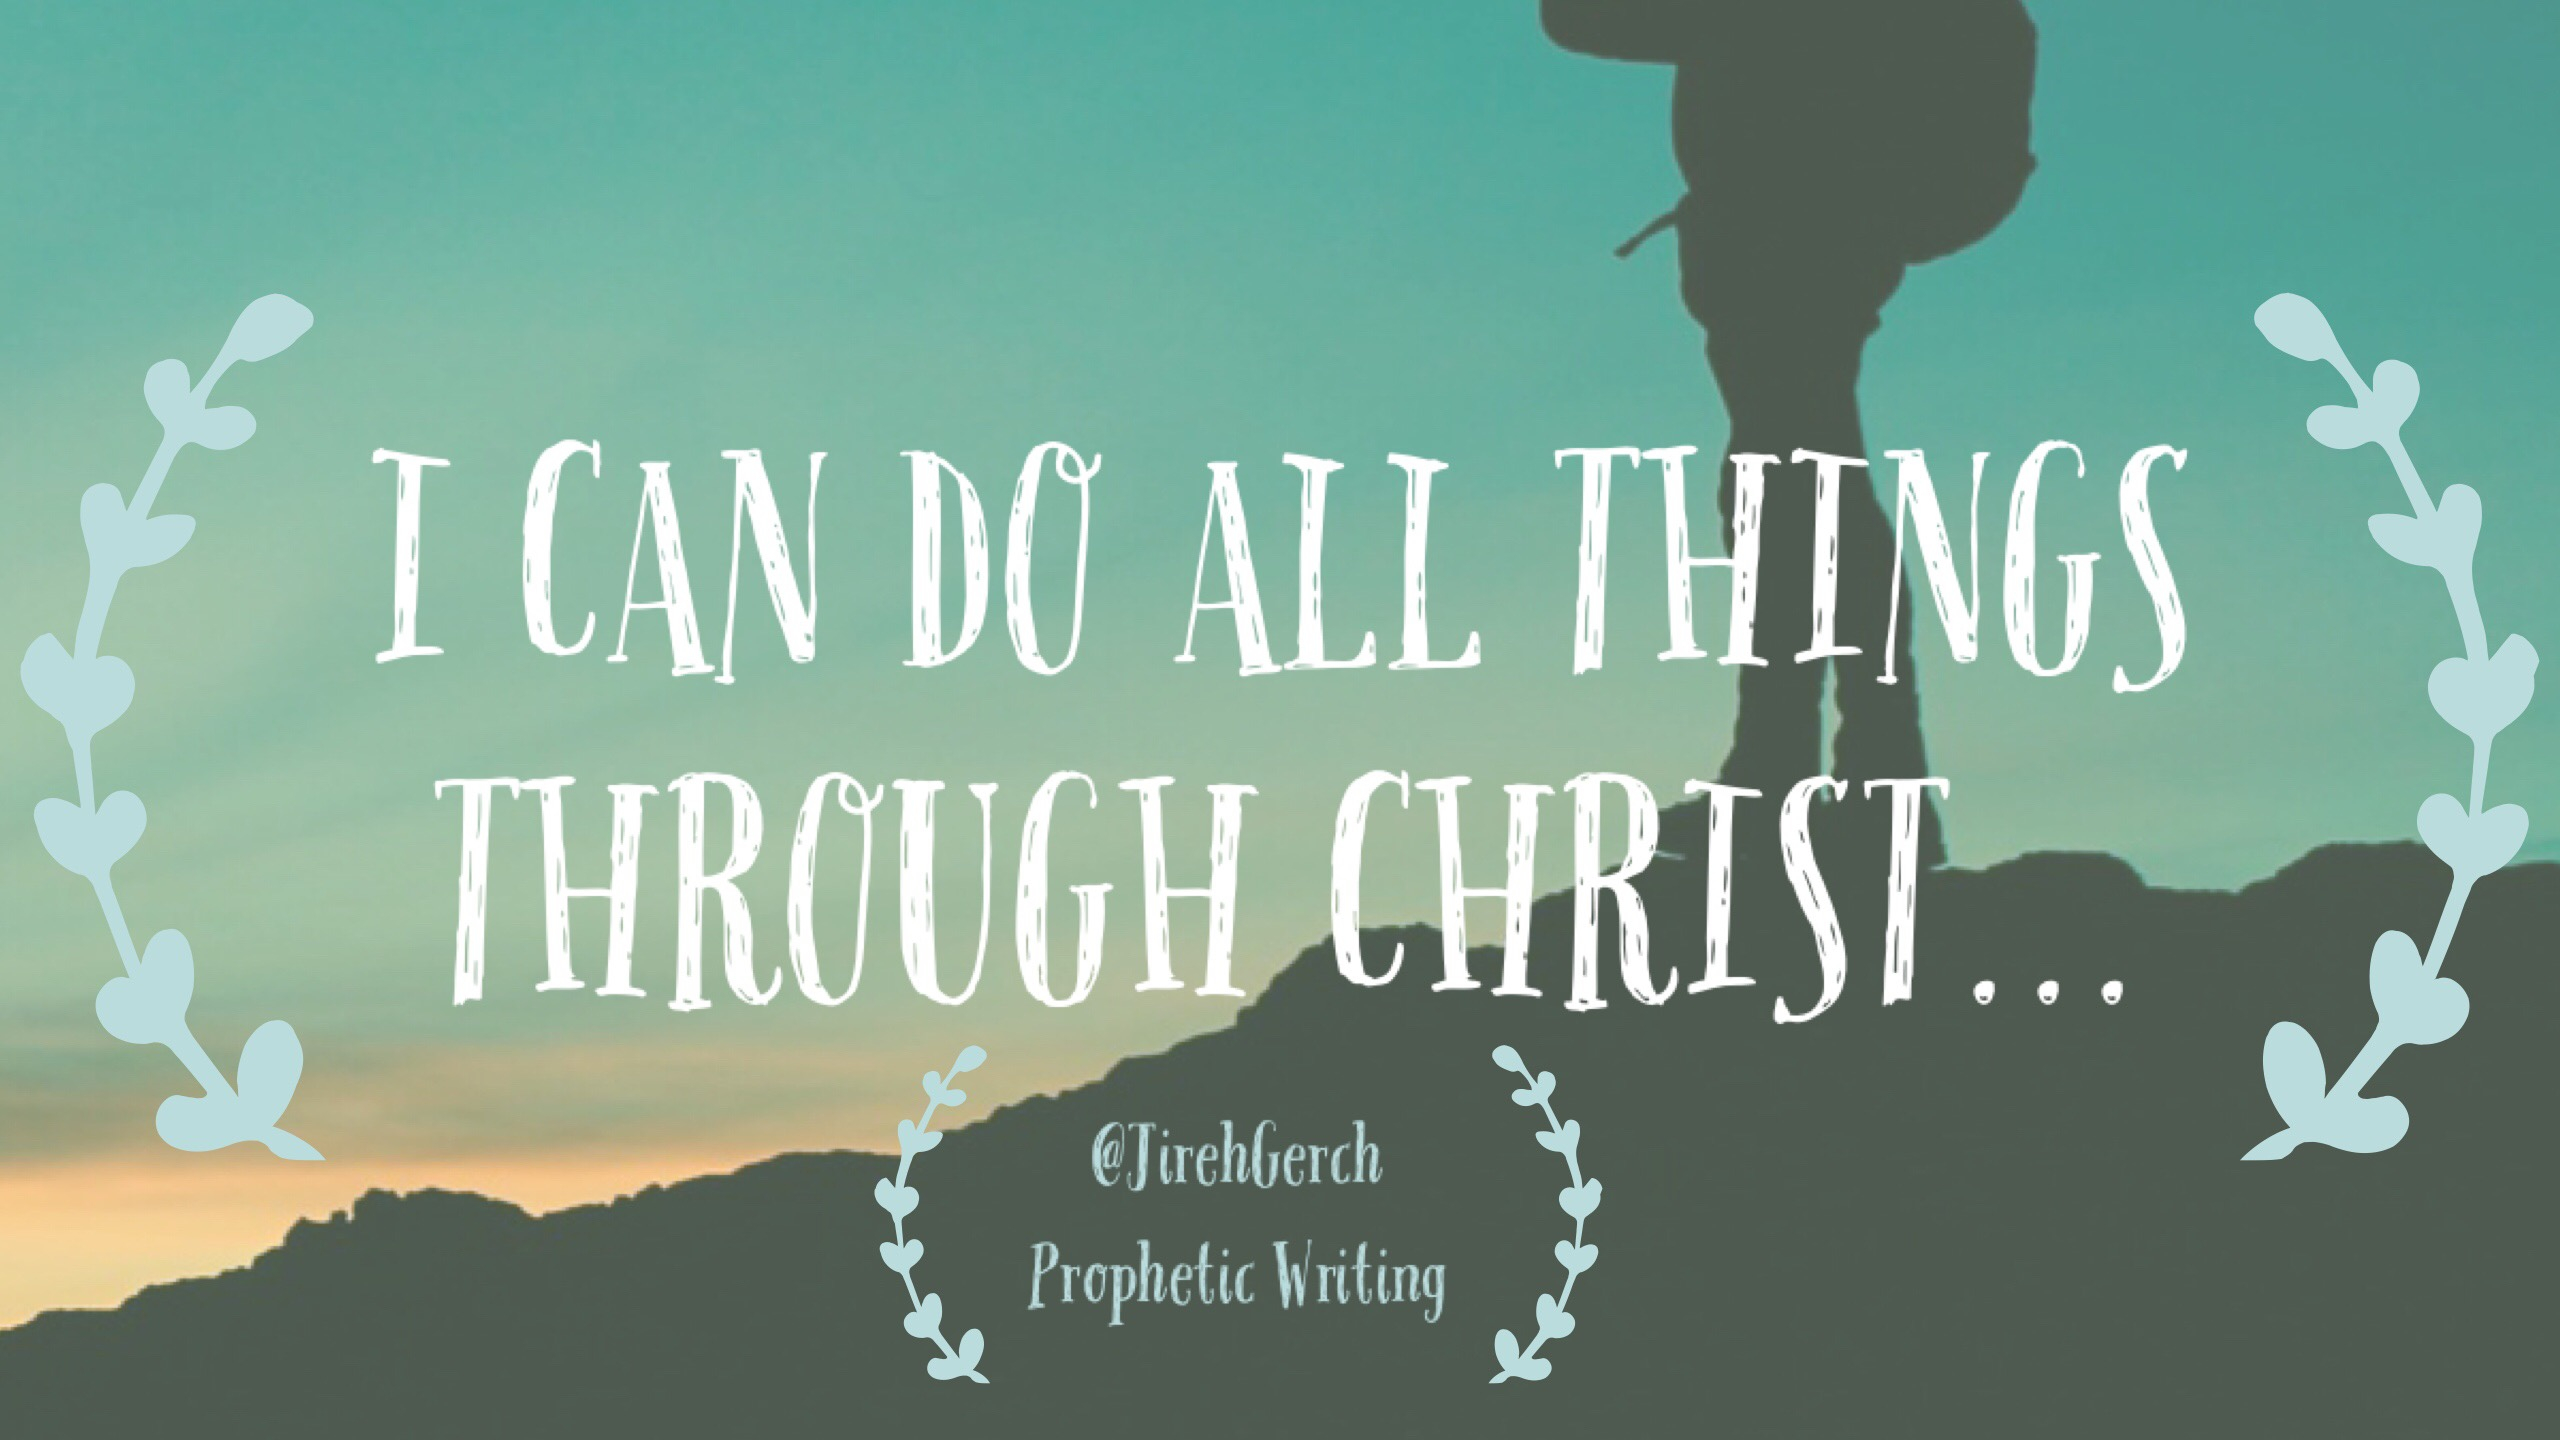 I Can Do All This Through Him Who Gives Me Strength